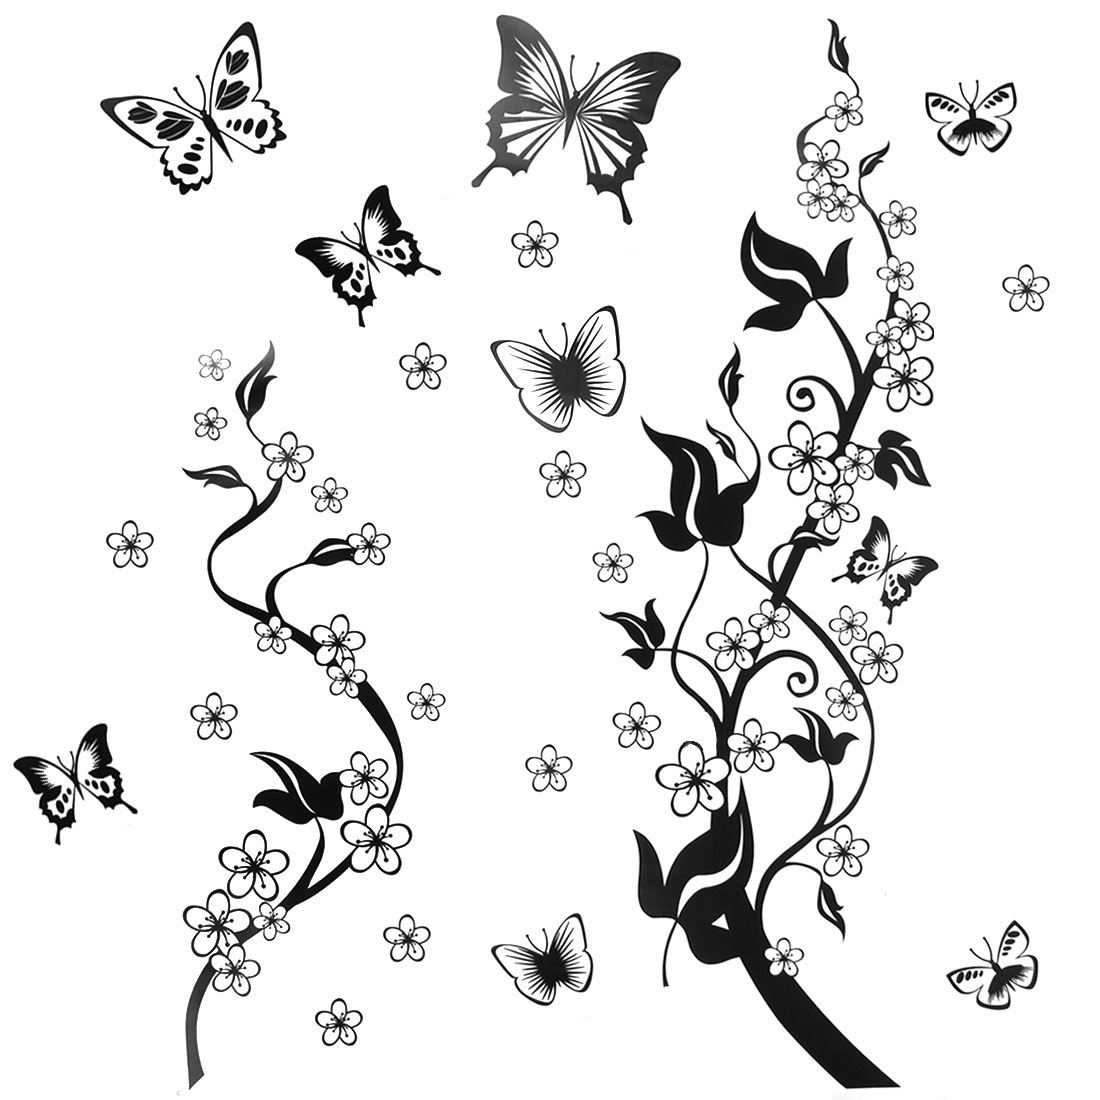 Unique Bargains Home Decor Black Self Adhesive PVC Butterfly Flowers Wall Sticker Decal